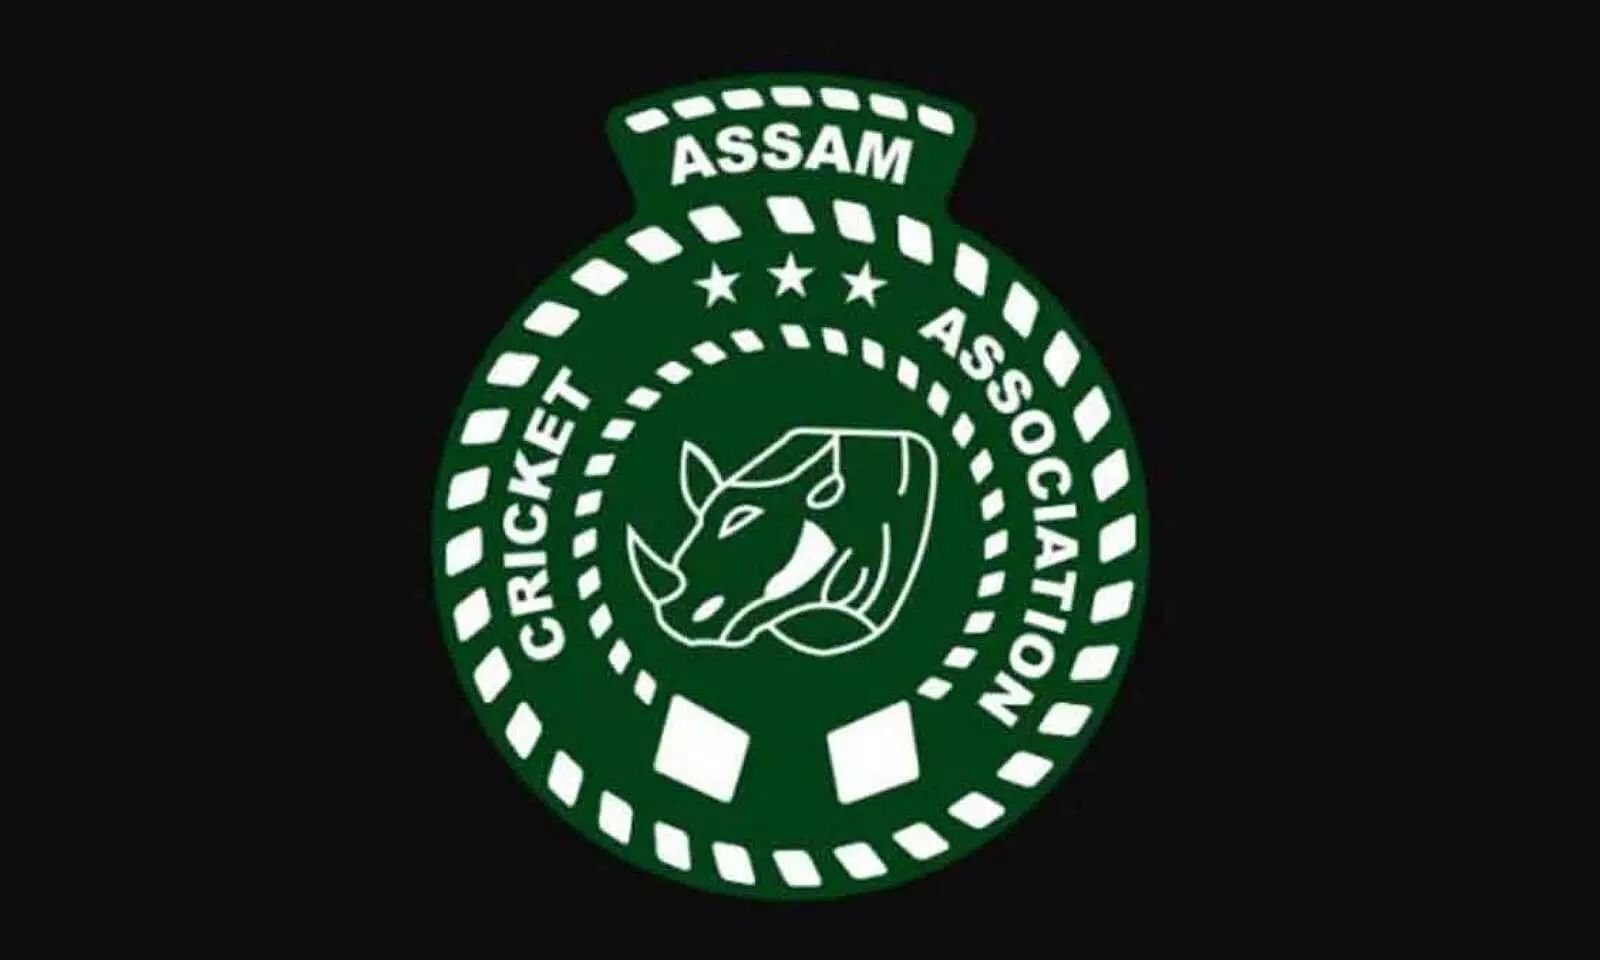 Assam Cricket Associations Annual Award function will be held at Gauhati Town Club auditorium